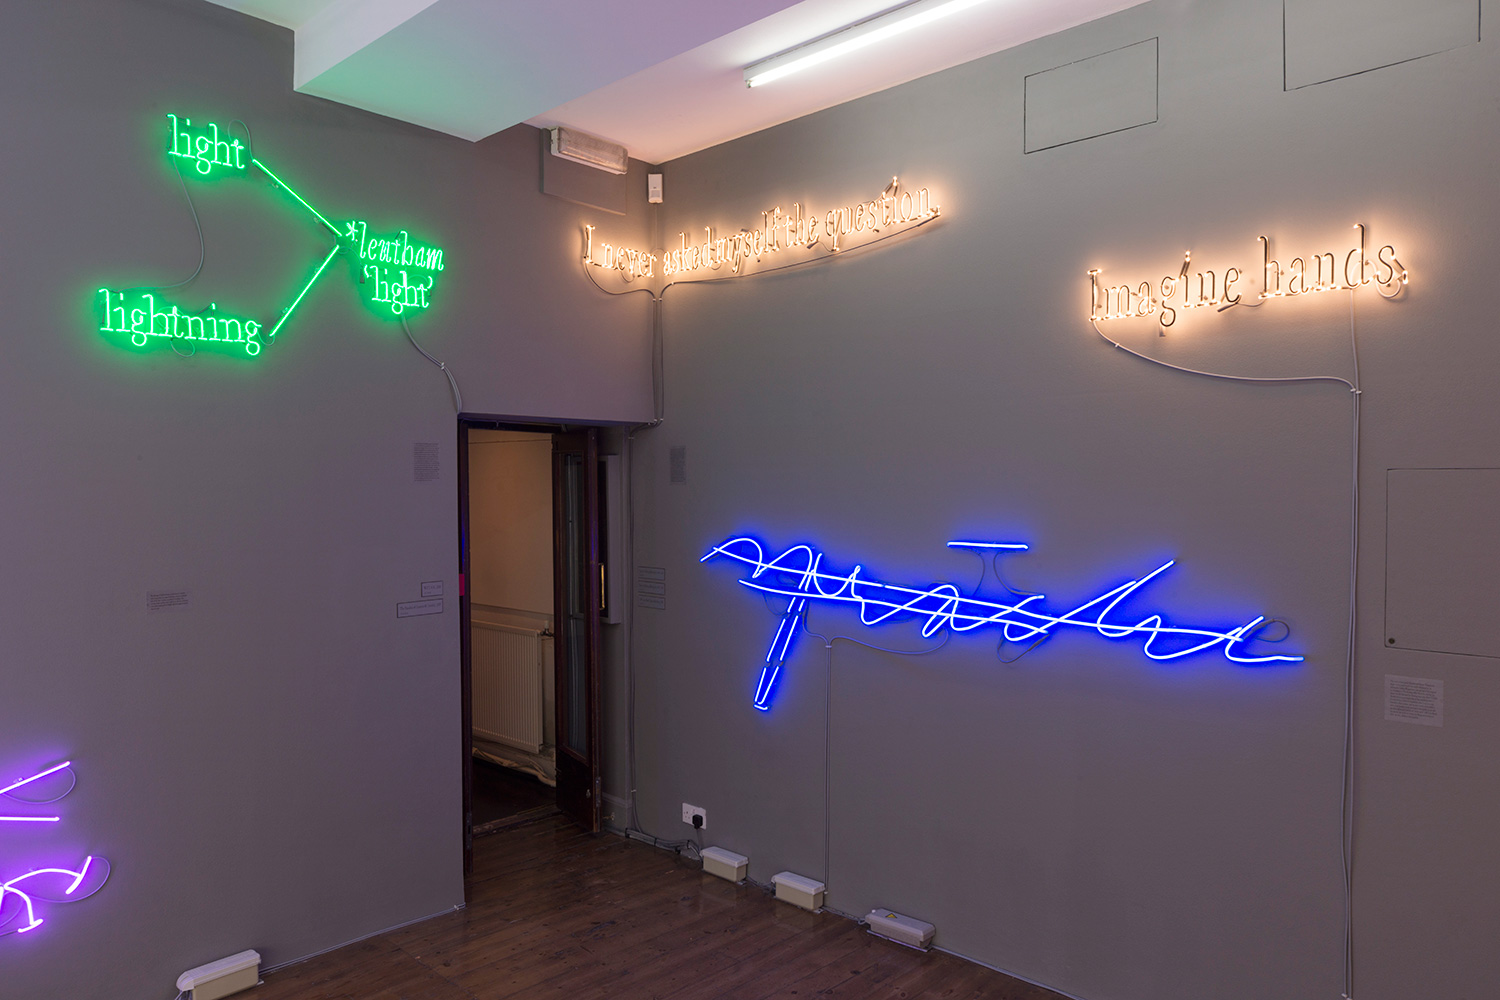 essay about conceptual art Explain why some critics explain conceptual art as an attack on the economics of art uncategorized all essay formats are available at writingsprocom.